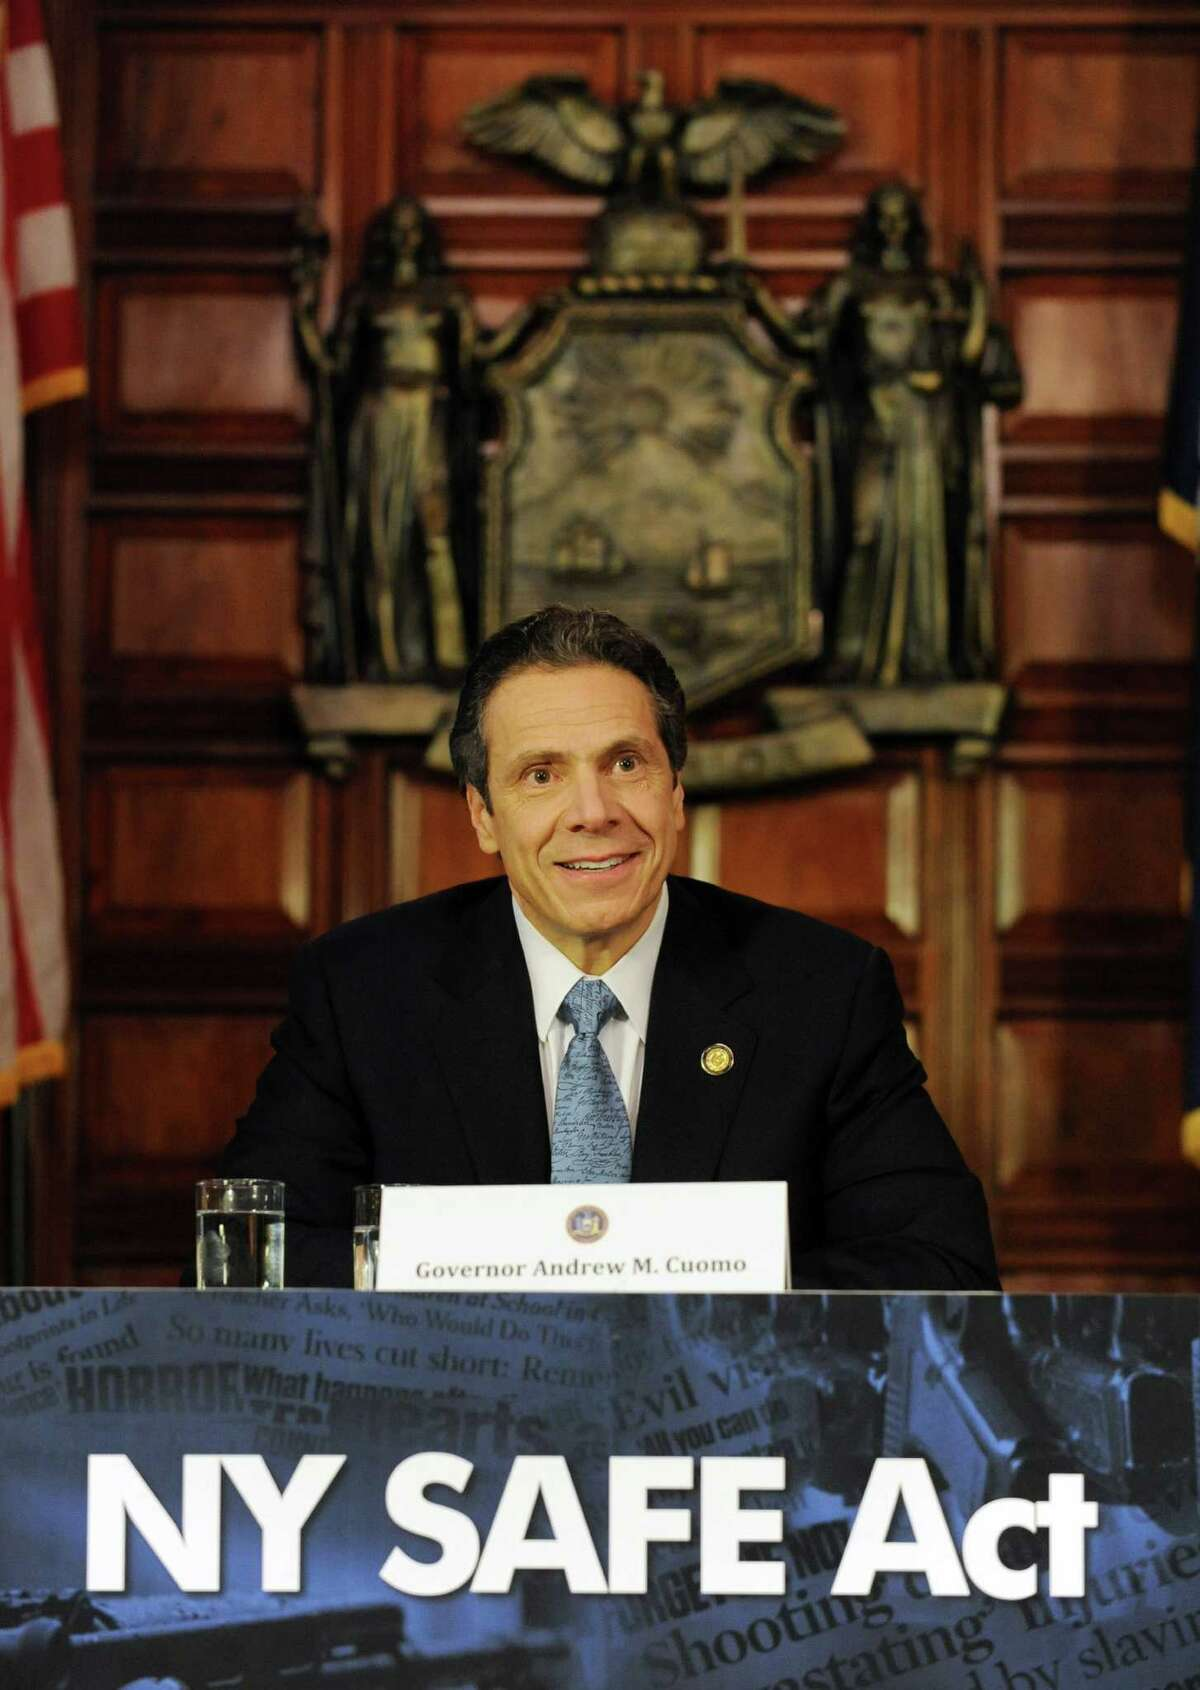 Governor Andrew Cuomo holds a press conference at the Capitol about a bill to broaden the state's definition of banned assault weapons, increase penalties for those convicted of gun crimes and create a statewide registry of assault rifles on Monday Jan. 14, 2013 in Albany, N.Y. (Lori Van Buren / Times Union)